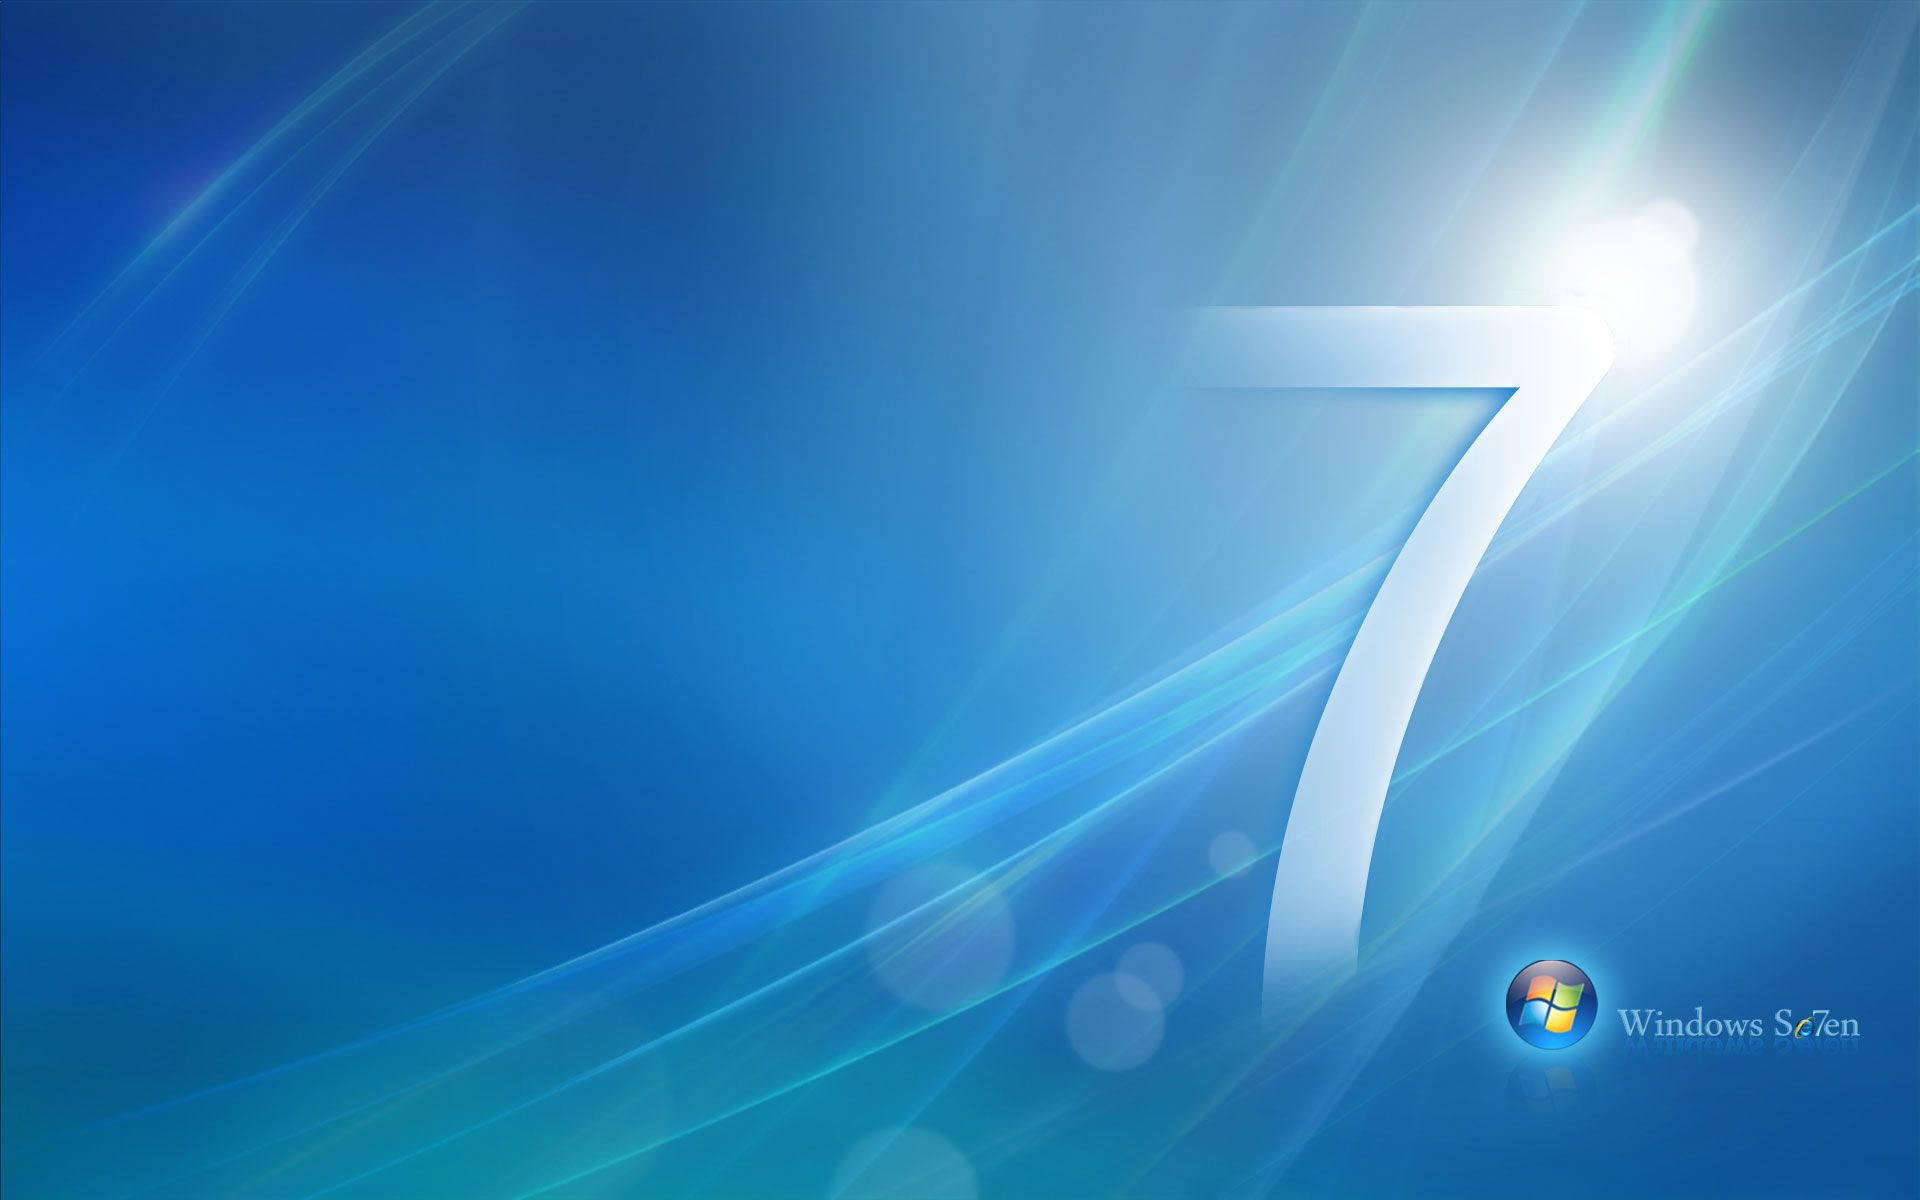 download windows 7 latest wallpapers hd gallery